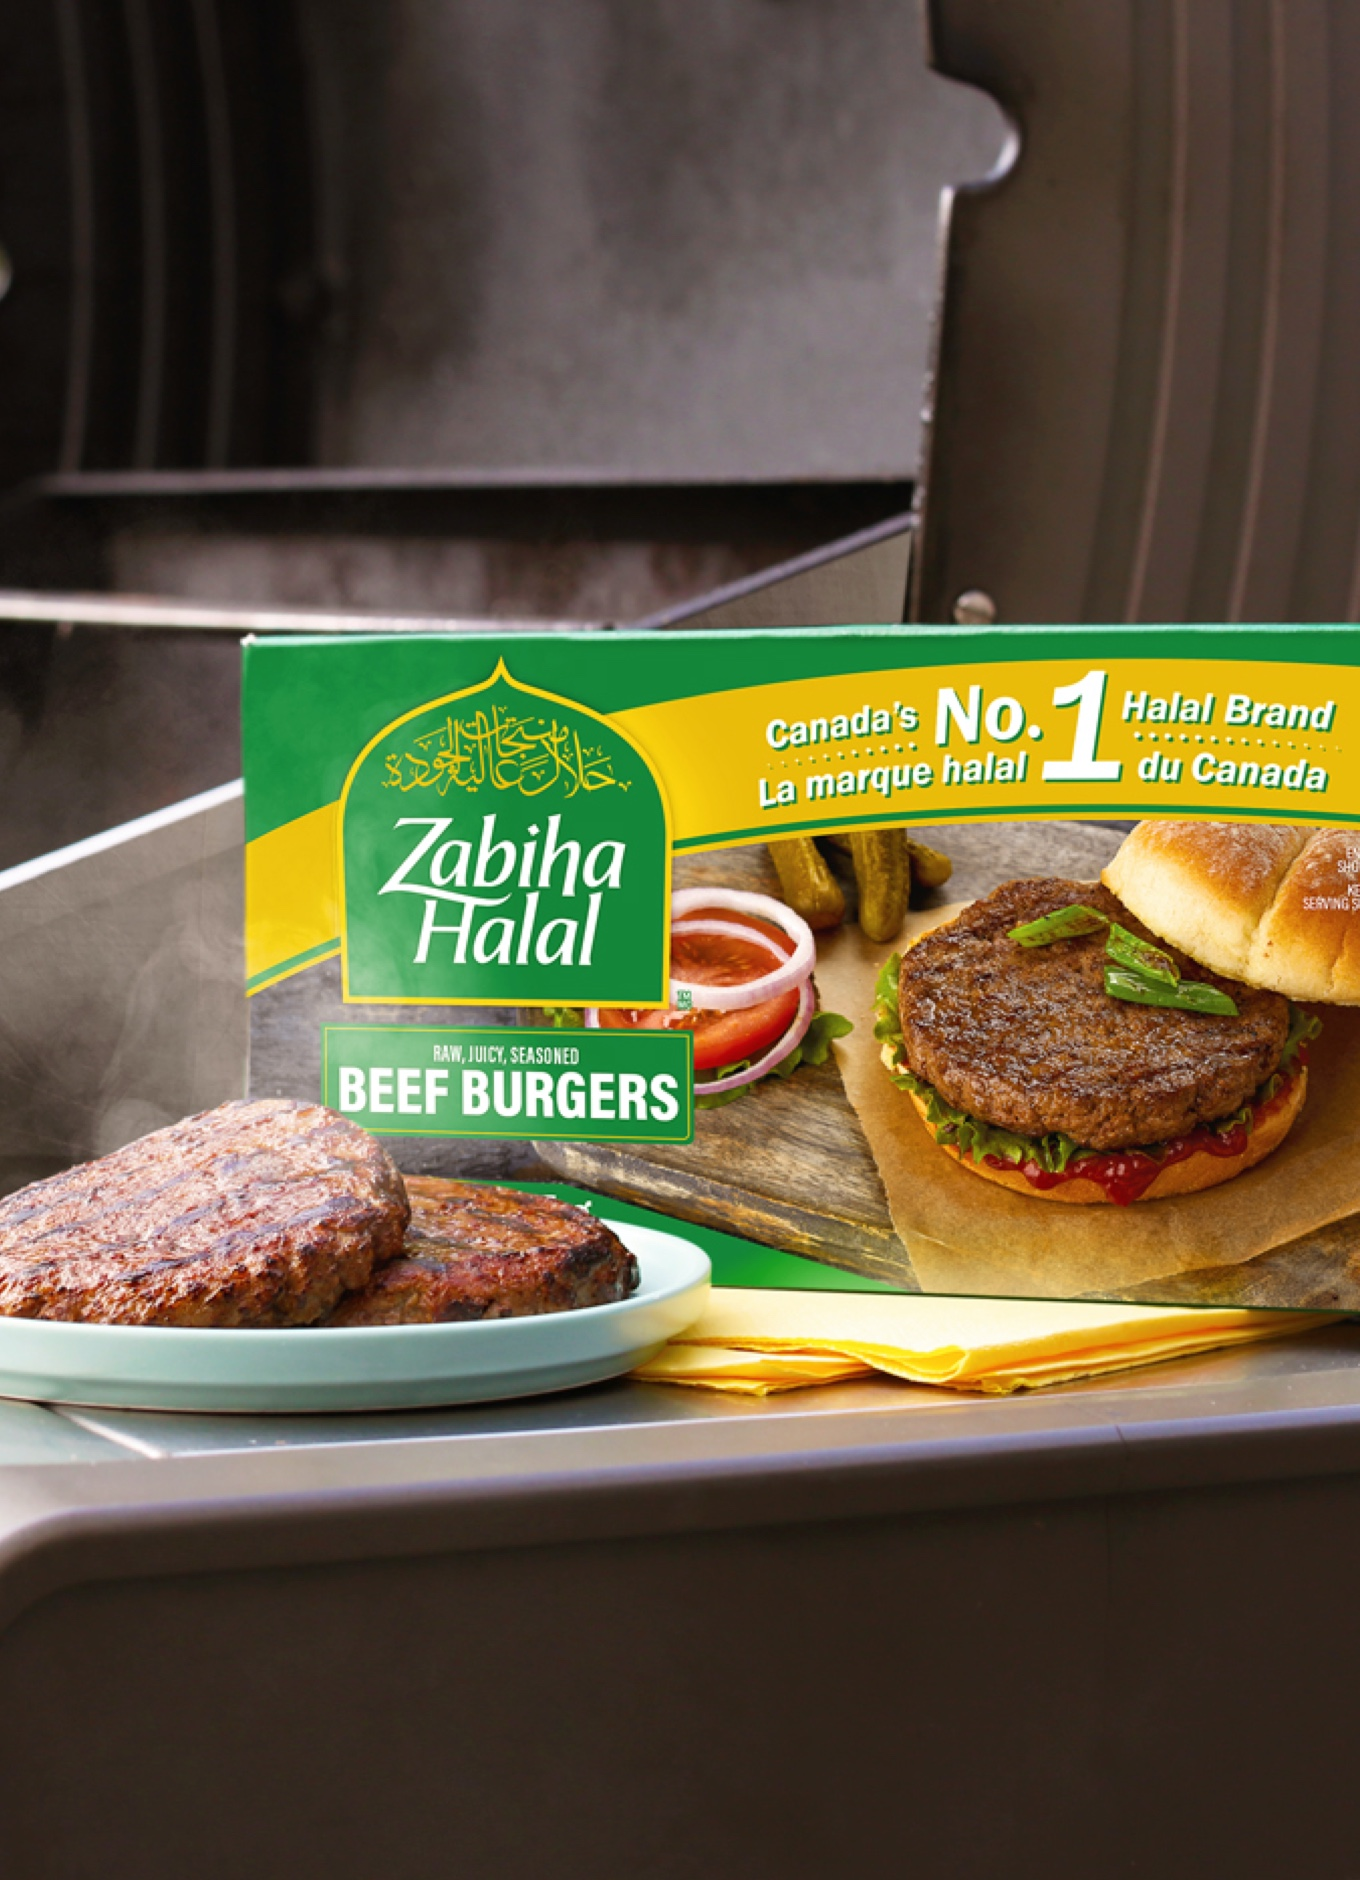 A package of Zabiha Halal beef burgers beside a plate of patties on a barbecue